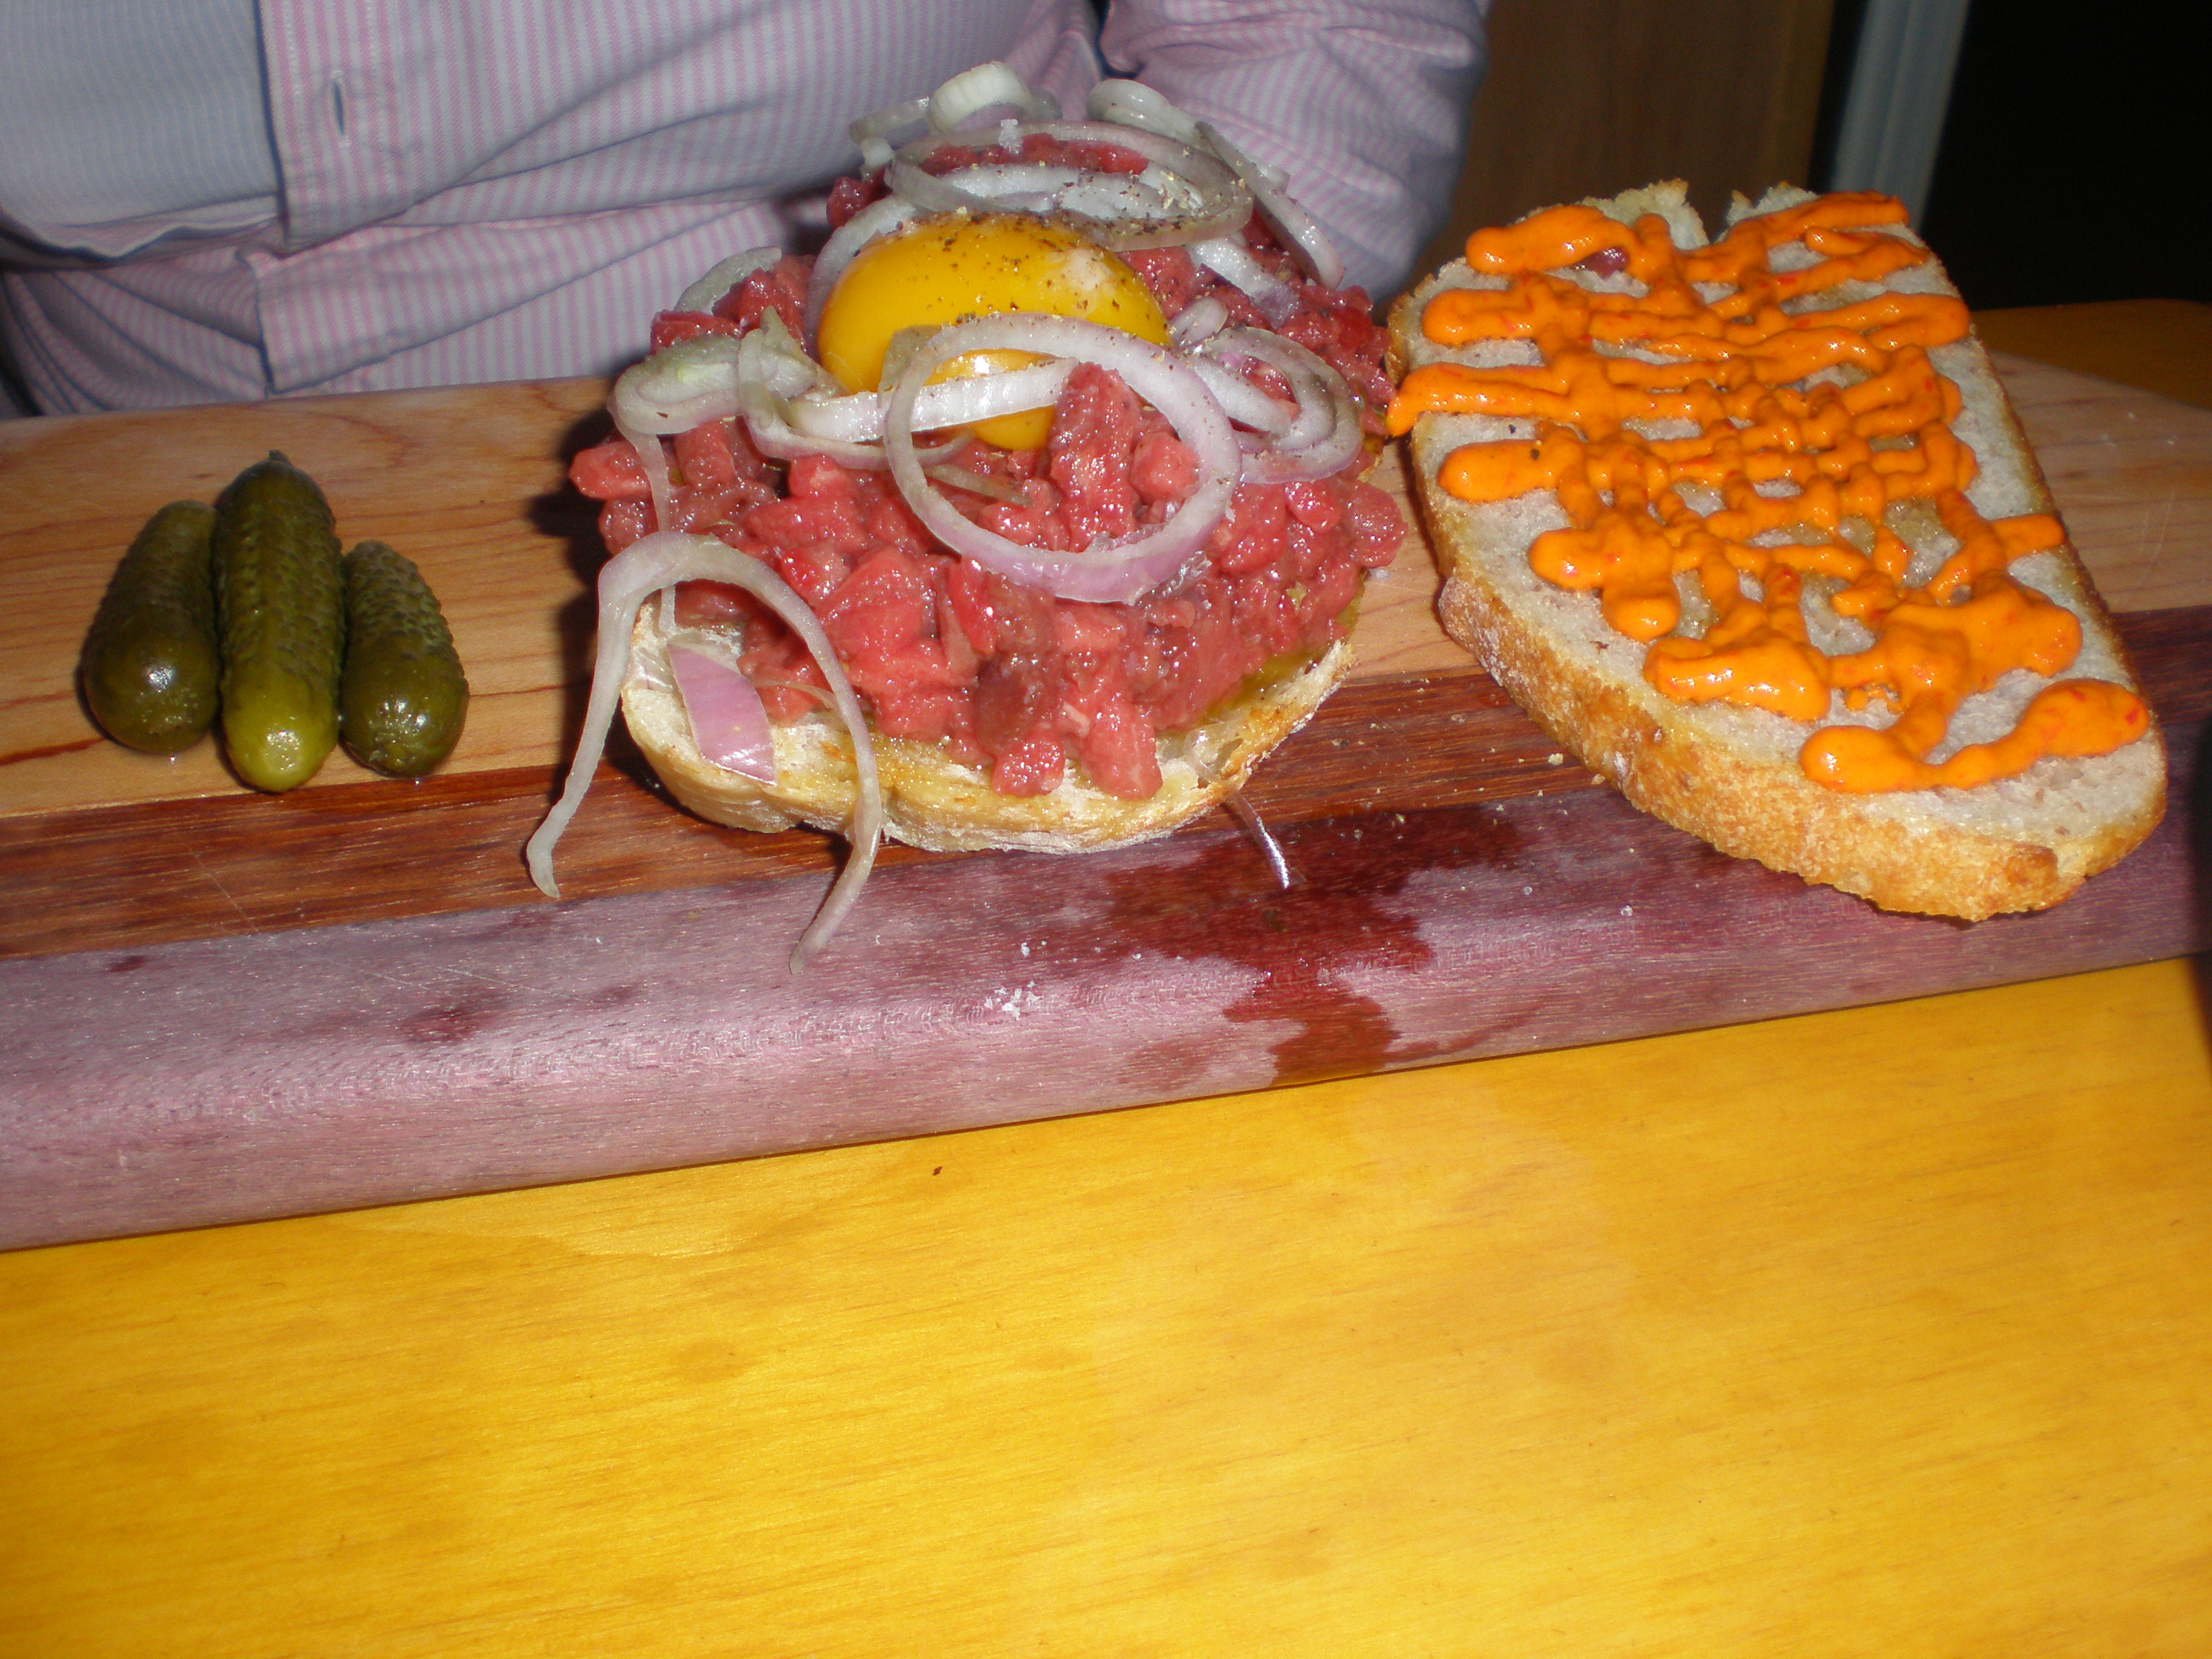 Raw bison (substituted for horse) sandwich